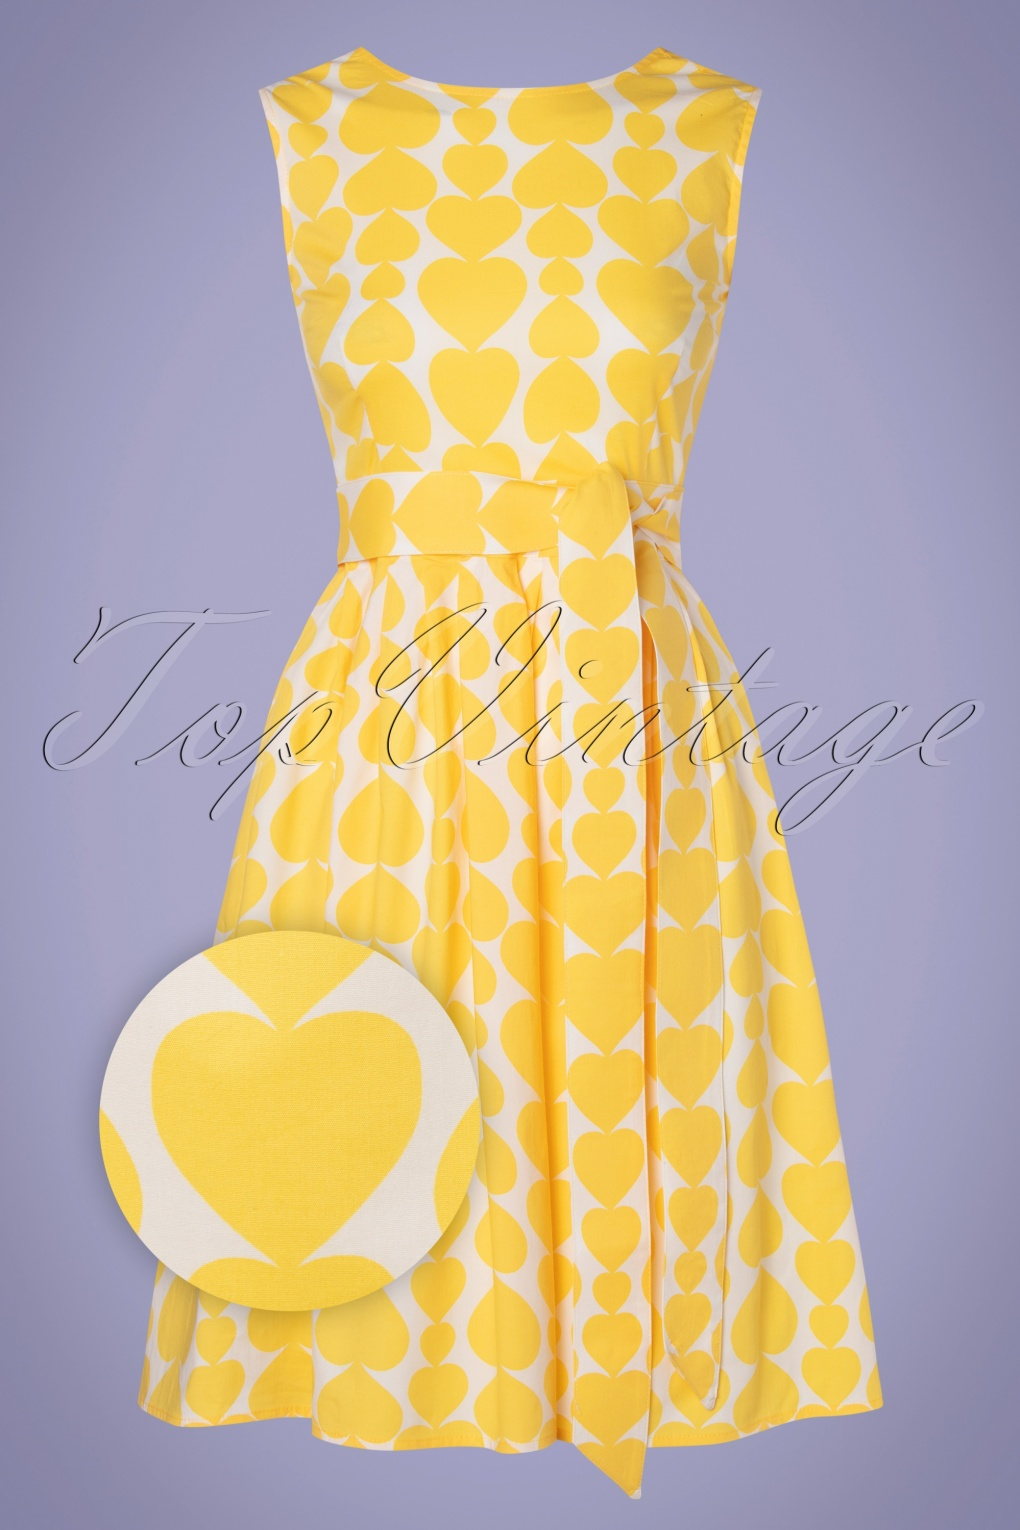 60s Dresses | 1960s Dresses Mod, Mini, Hippie 60s Non-Stop Dancing Dress in Heartbeat Yellow £87.81 AT vintagedancer.com